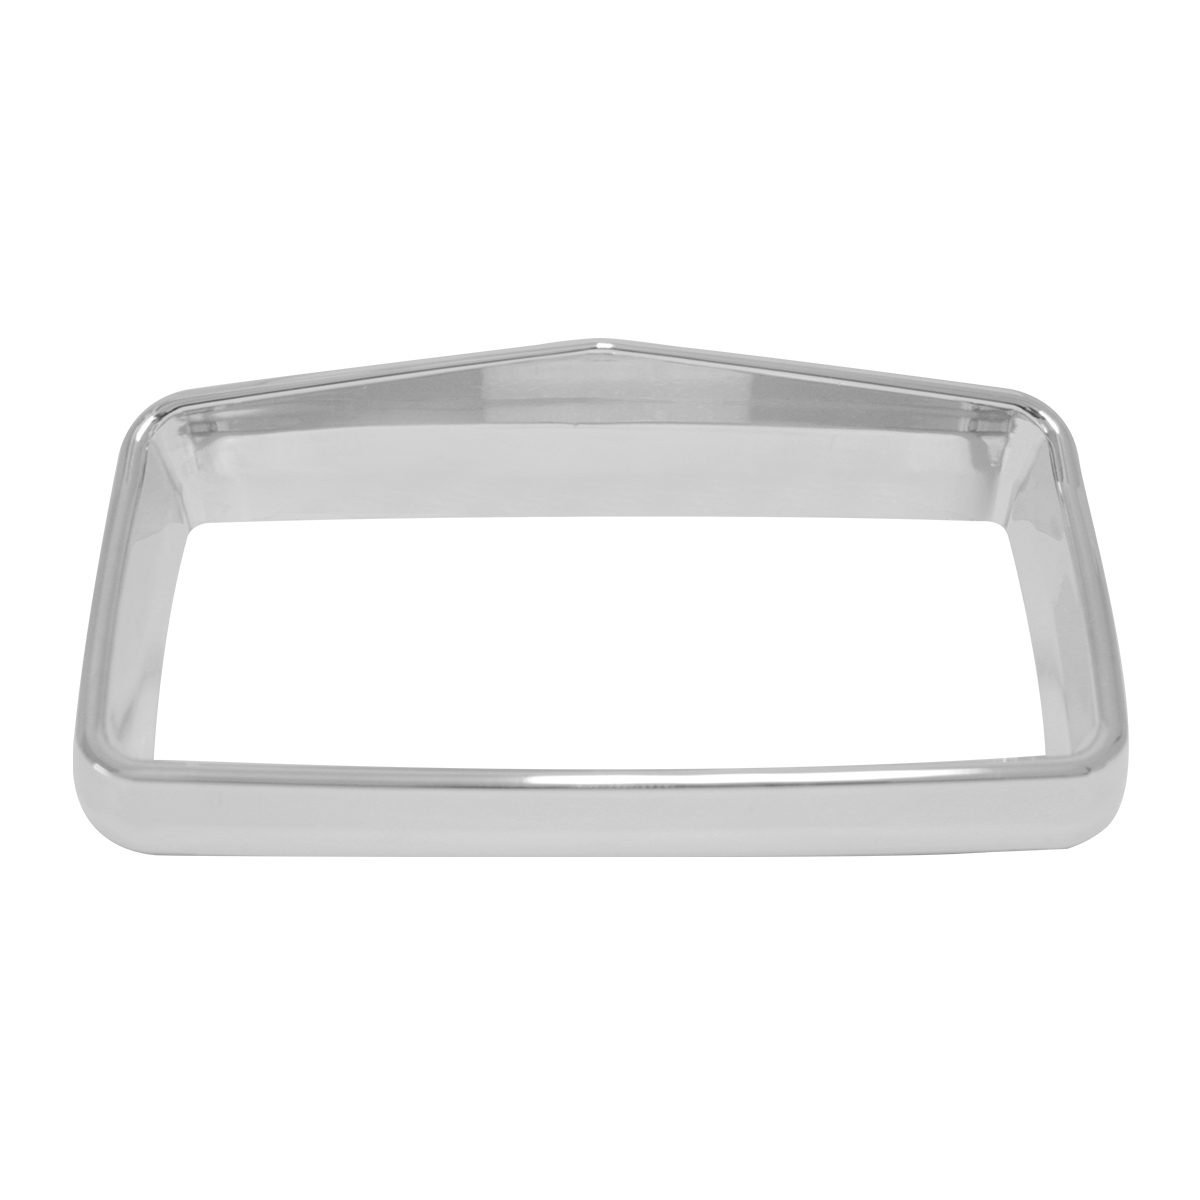 52012 Center Dash Instrumental Bezel w/ Visor for Peterbilt 2006 & Later